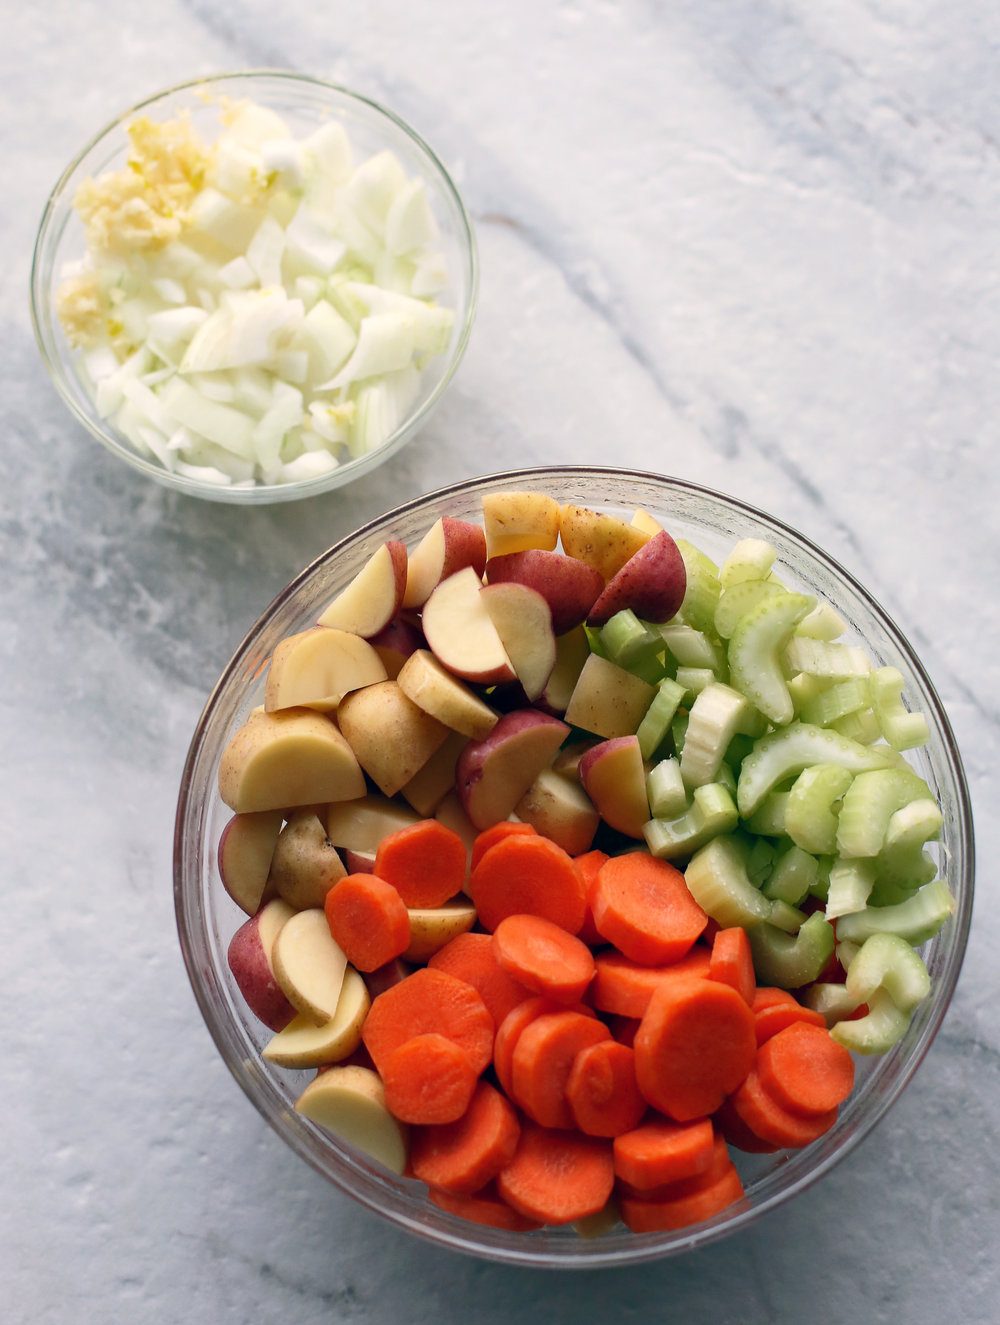 Two glass bowls filled with garlic, onions, carrots, potatoes, and celery.